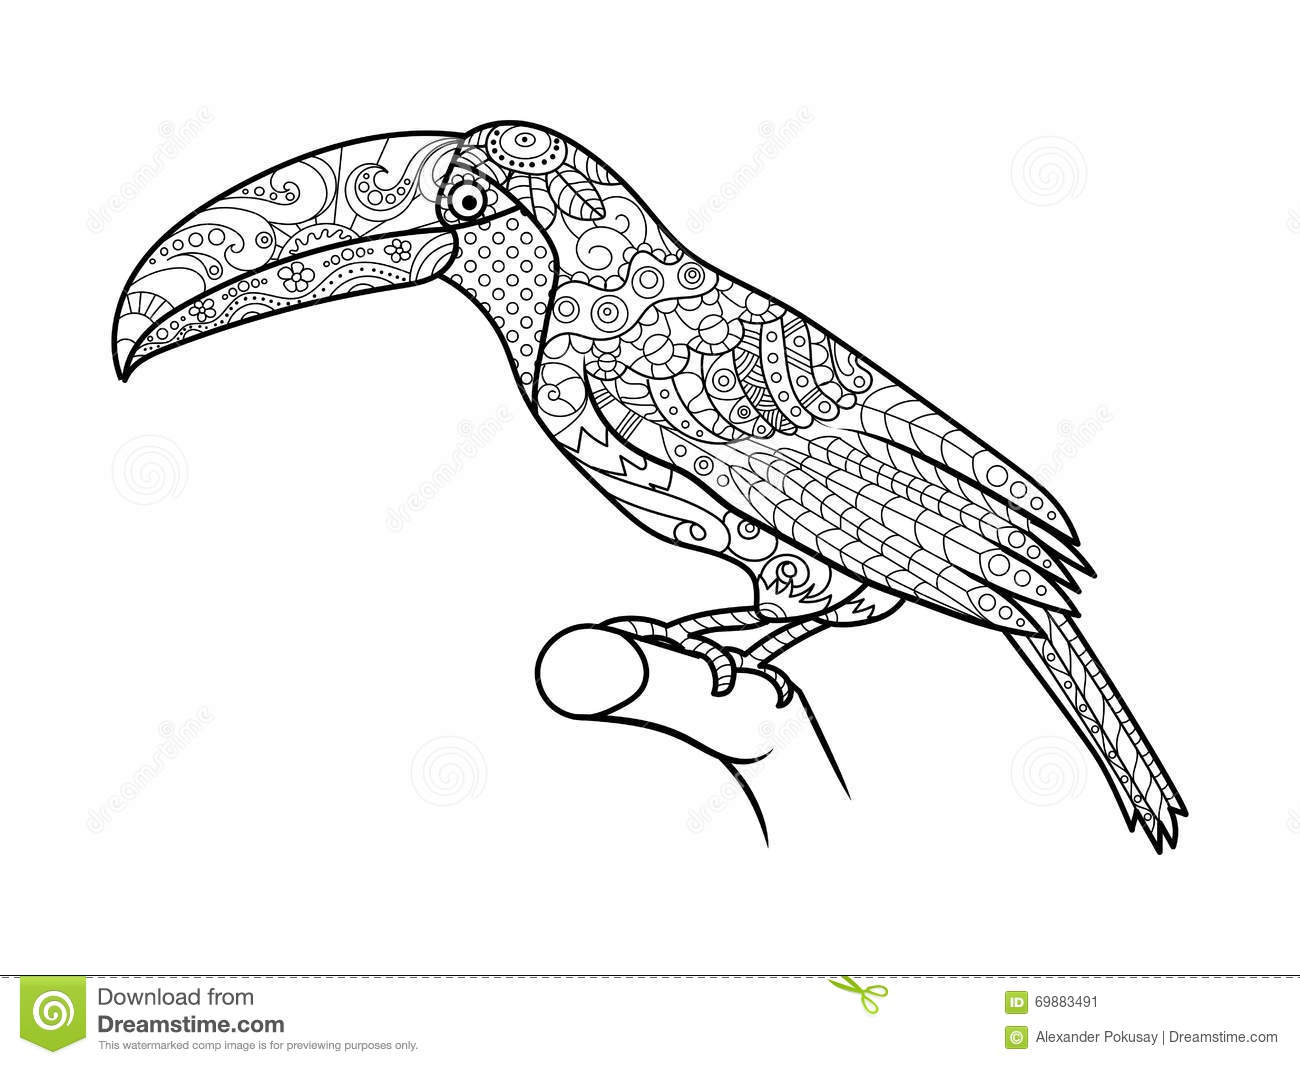 toucan coloring book adults vector bird illustration anti stress adult zentangle style black white lines lace